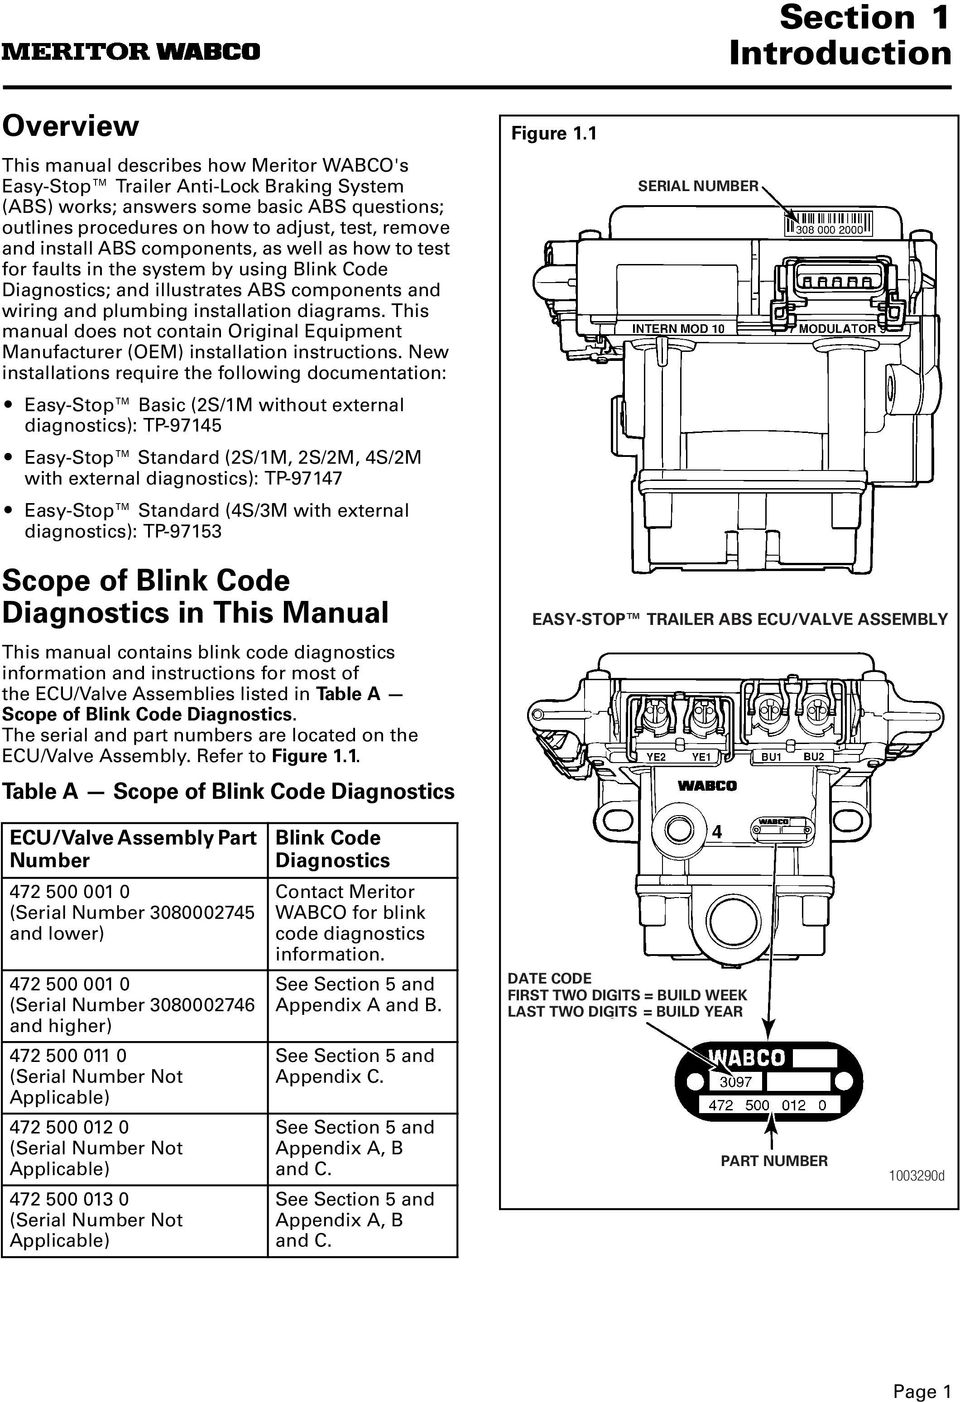 hight resolution of plumbing installation diagrams this manual does not contain original equipment manufacturer oem installation